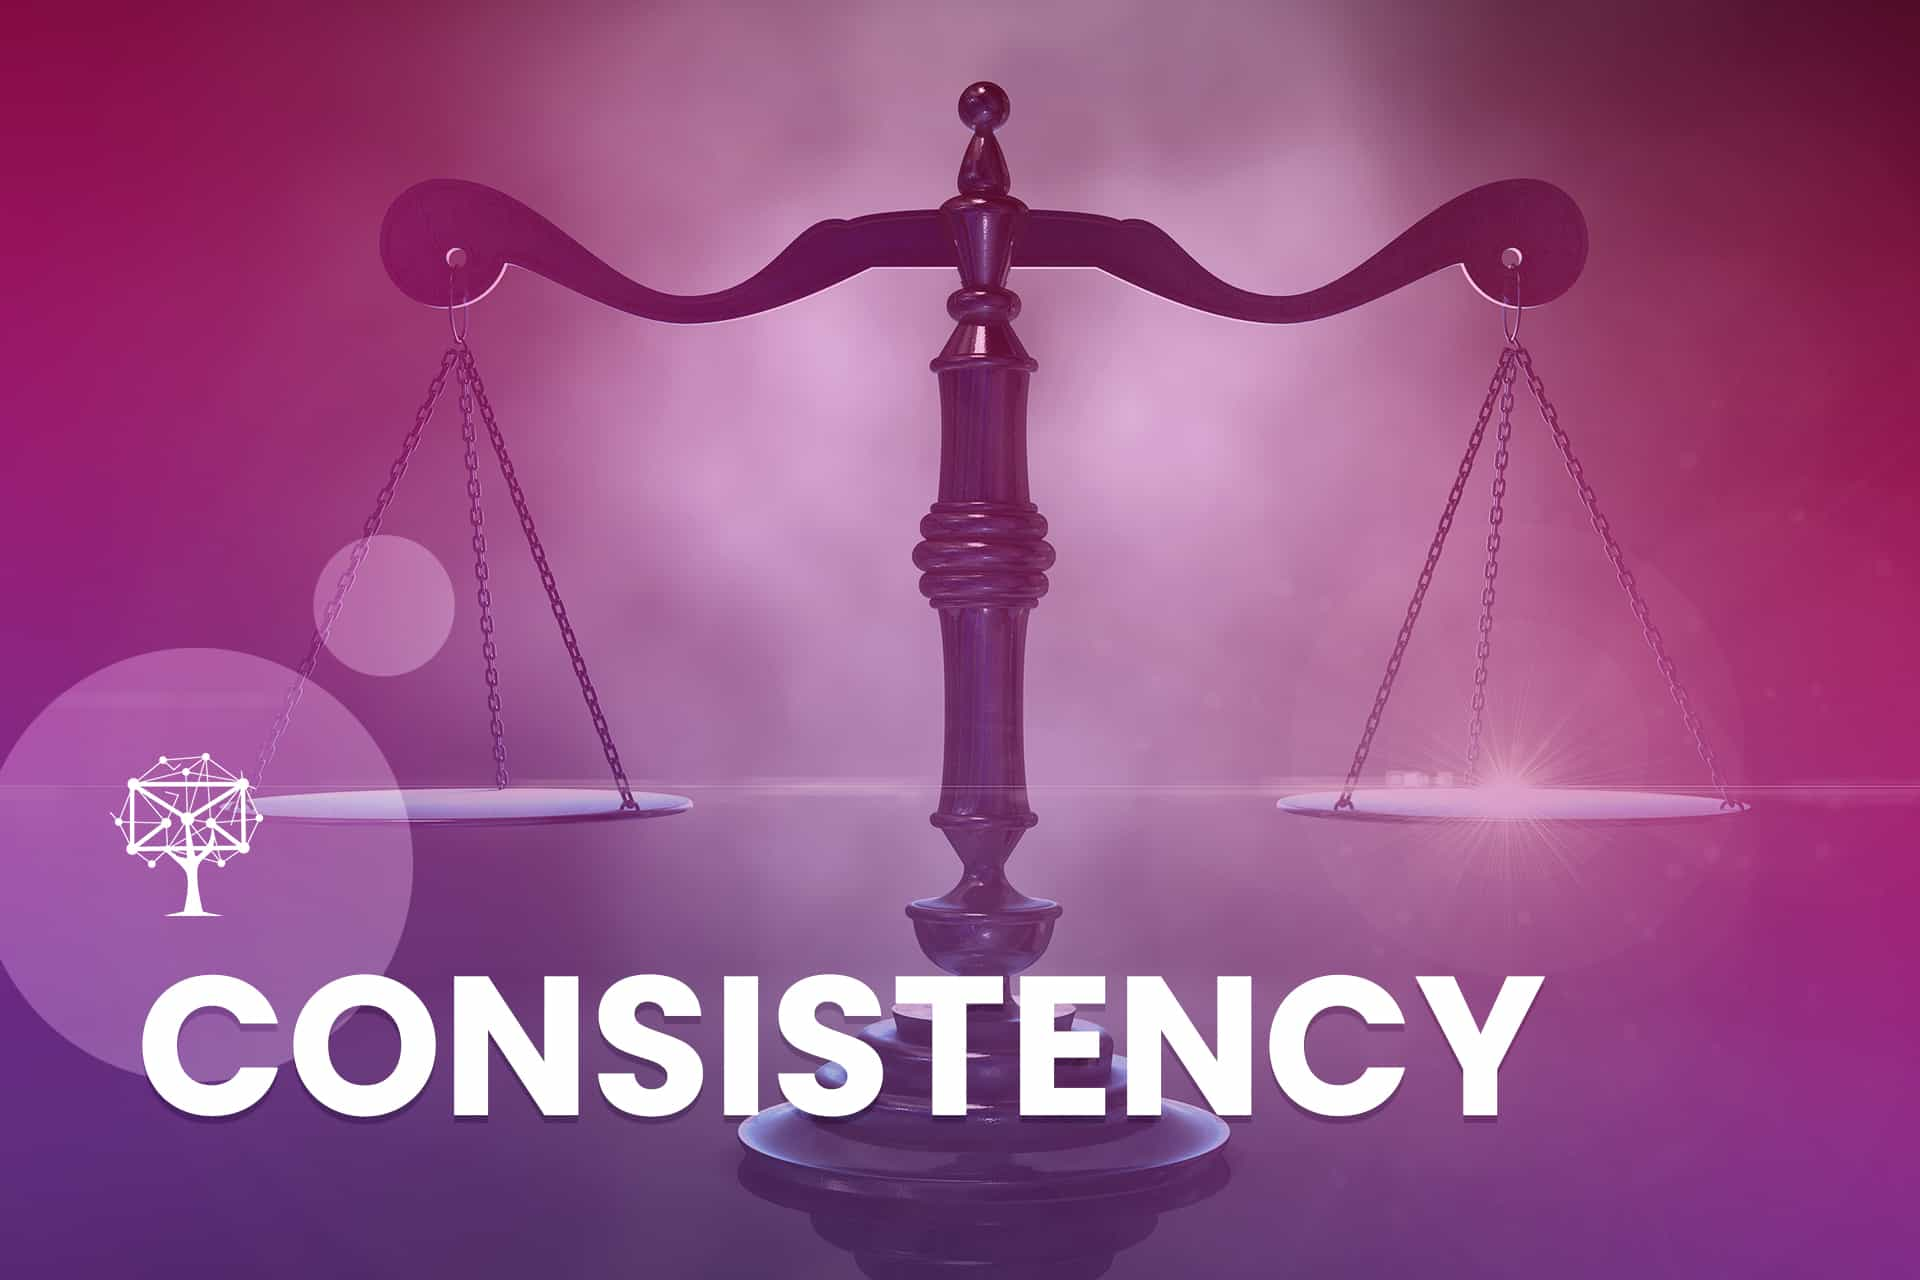 Consistency is a customer service skill